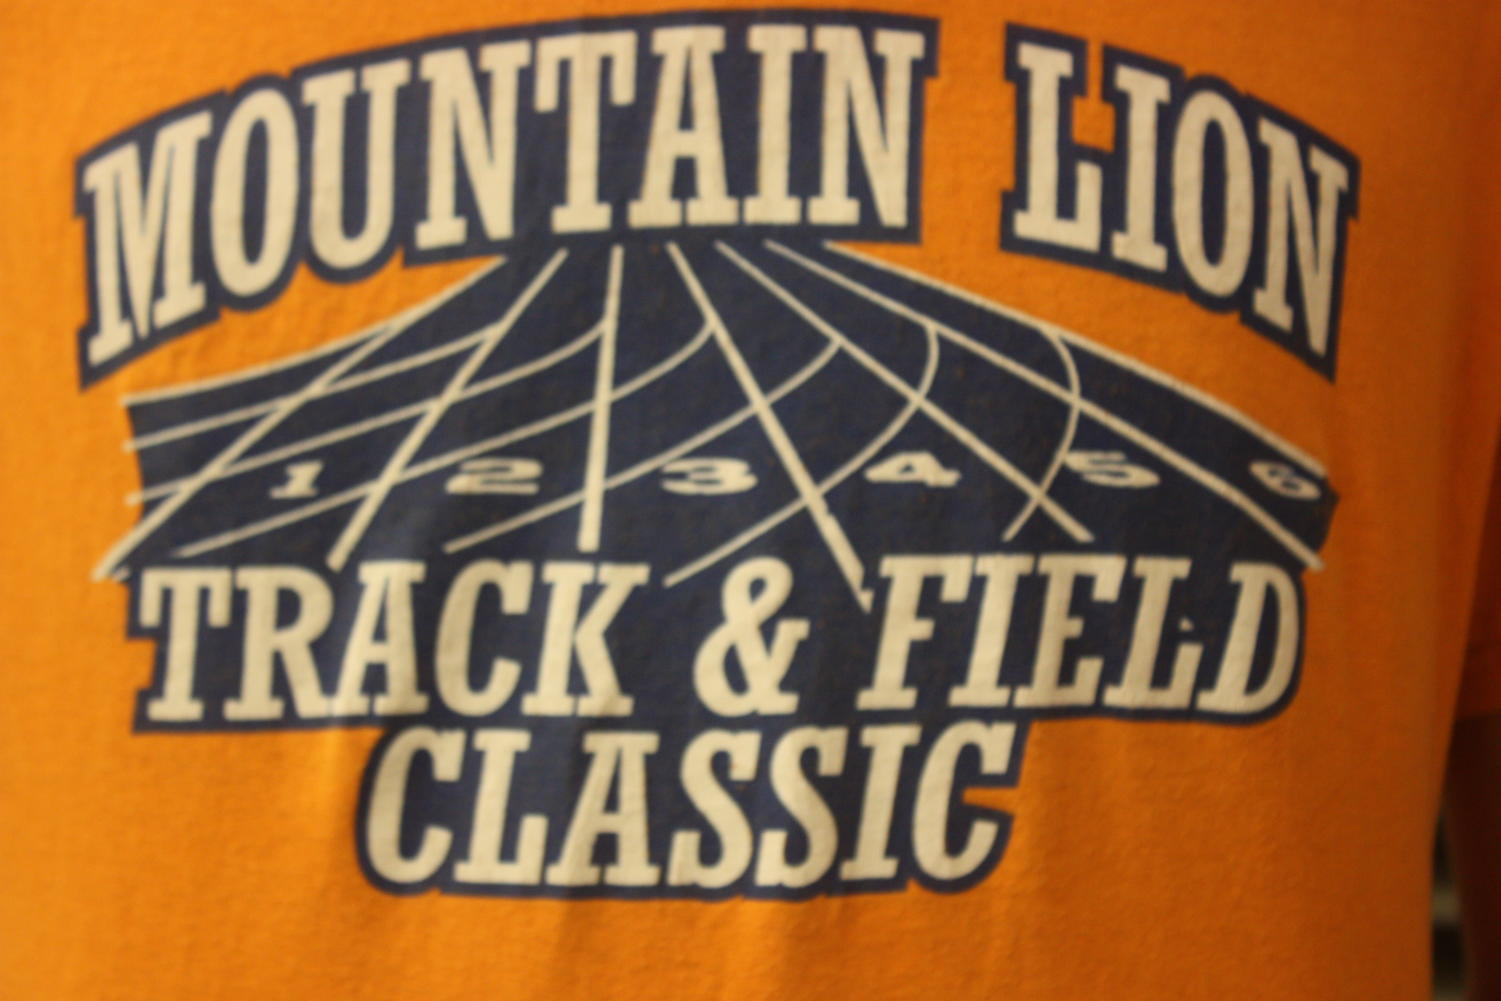 Students may participate in the Mountain Lion Classic each year in April.